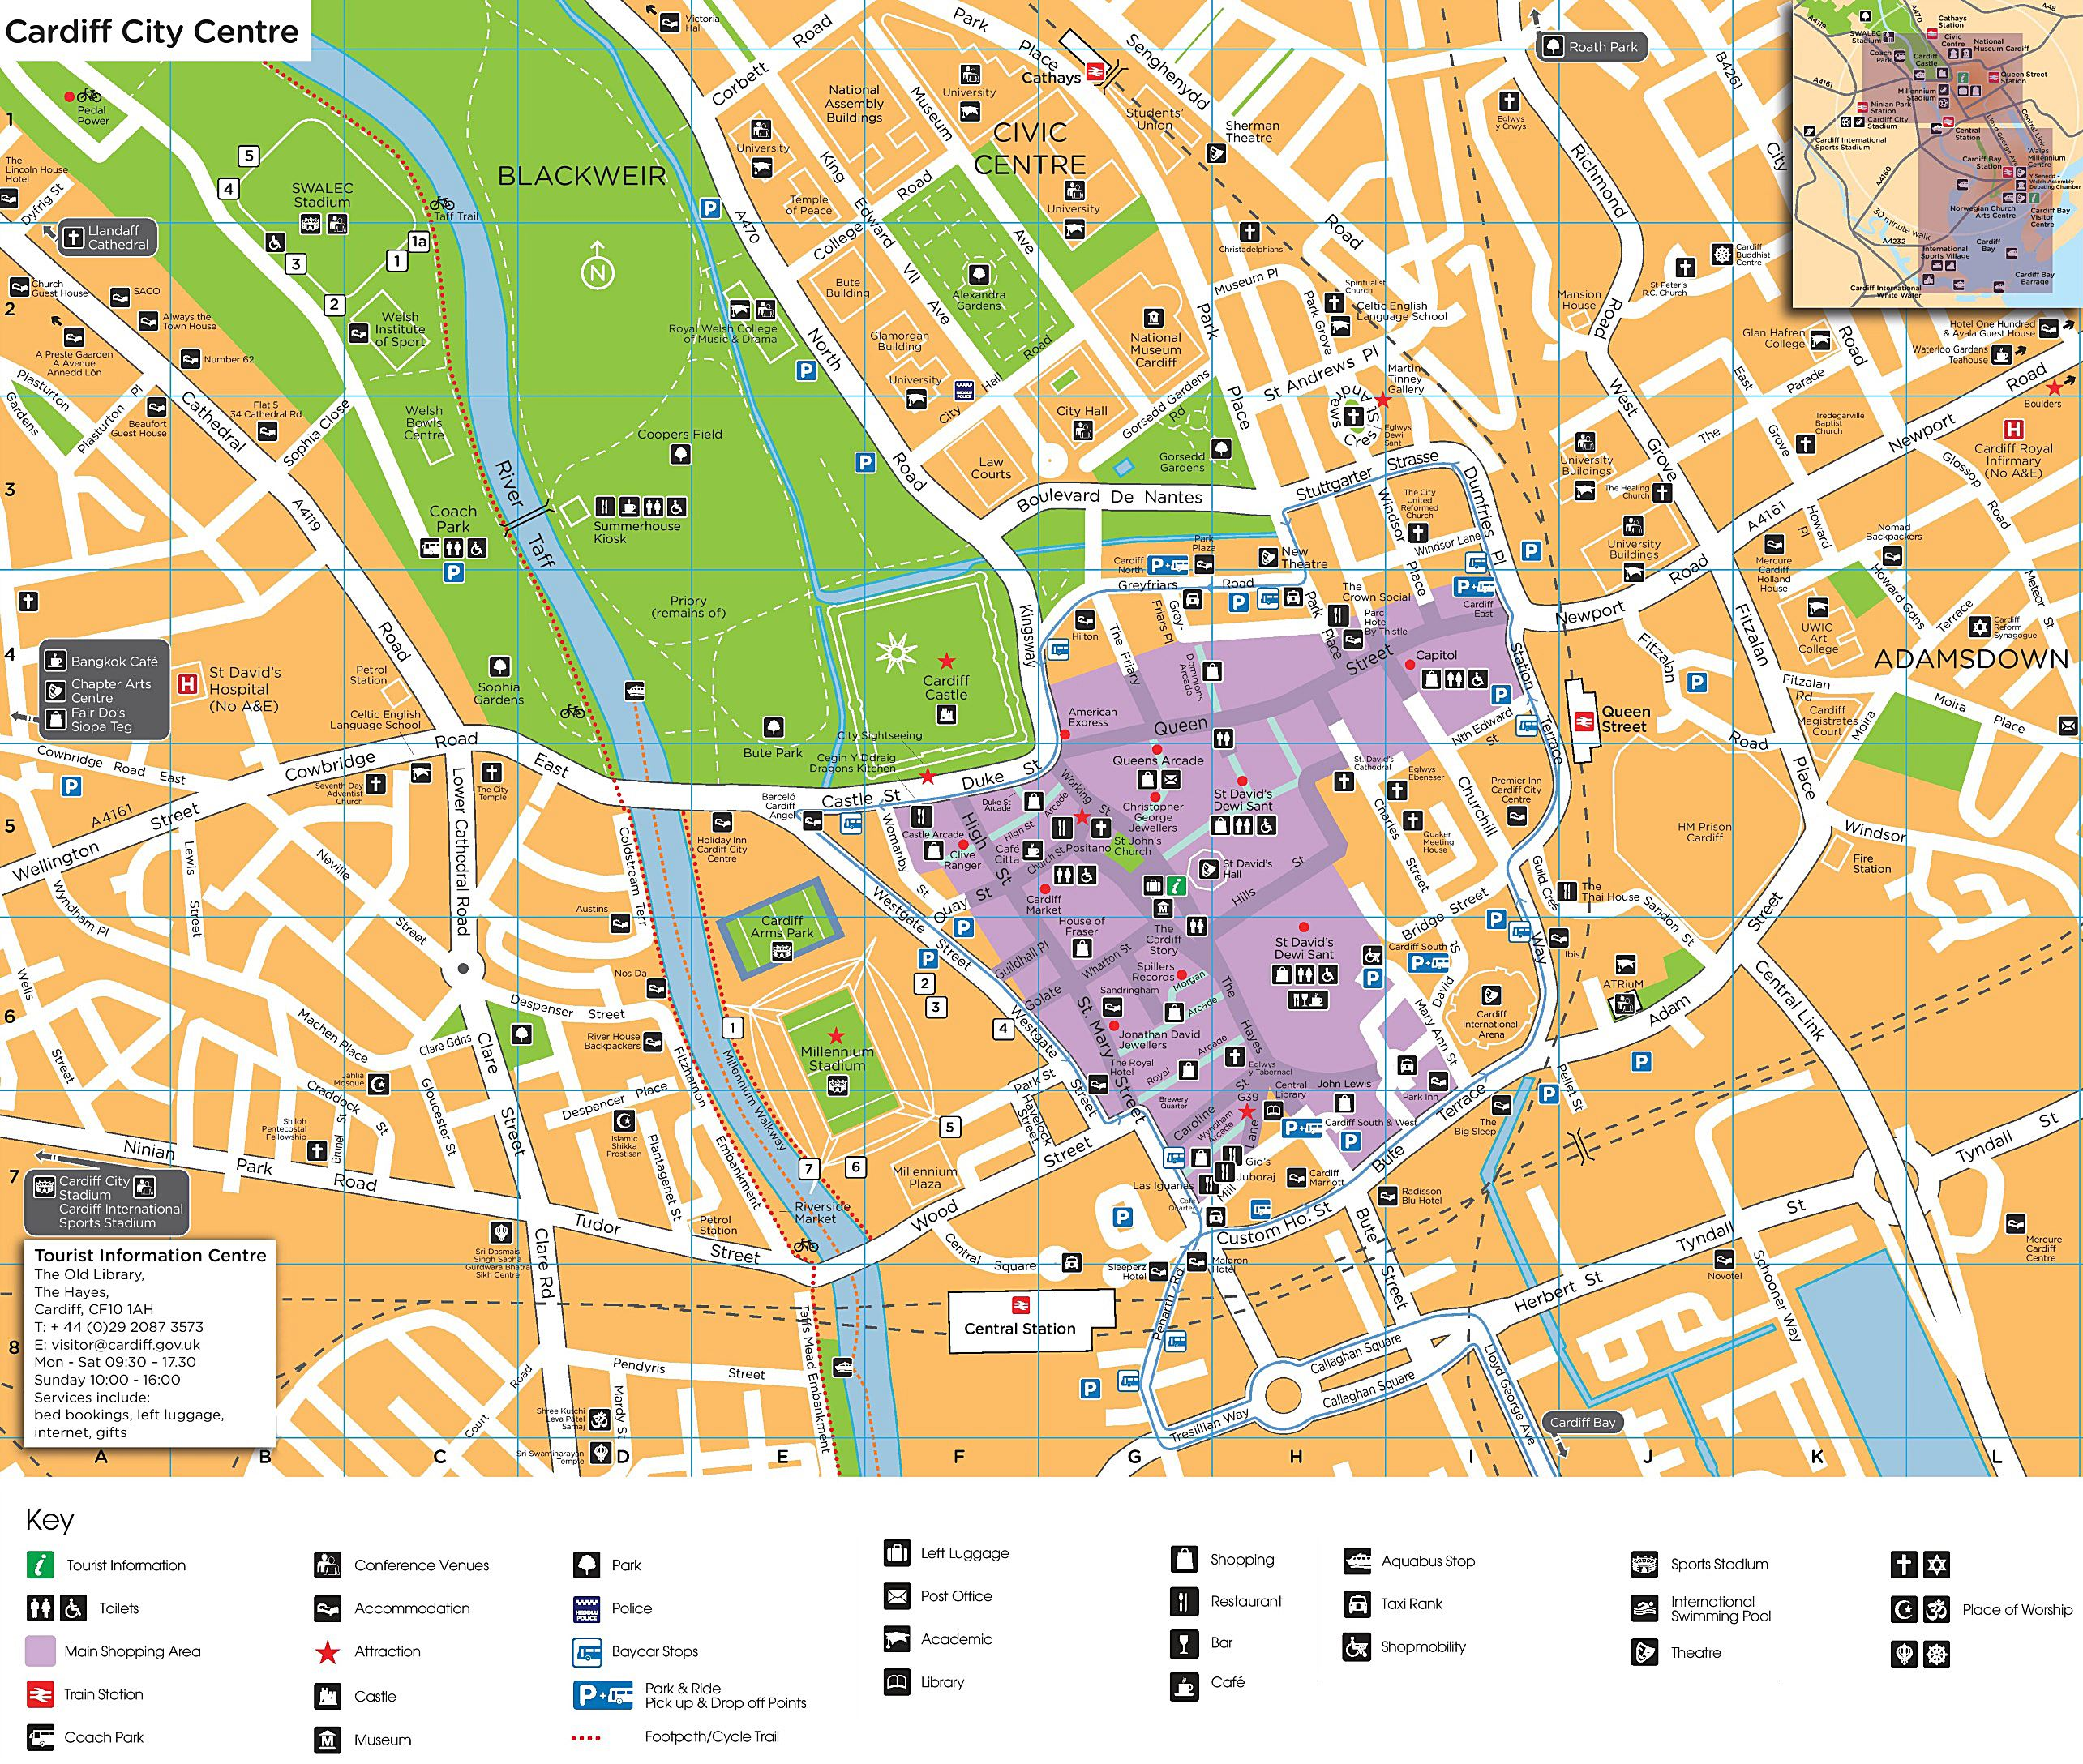 Cardiff City Centre Map Large Cardiff Maps for Free Download and Print | High Resolution